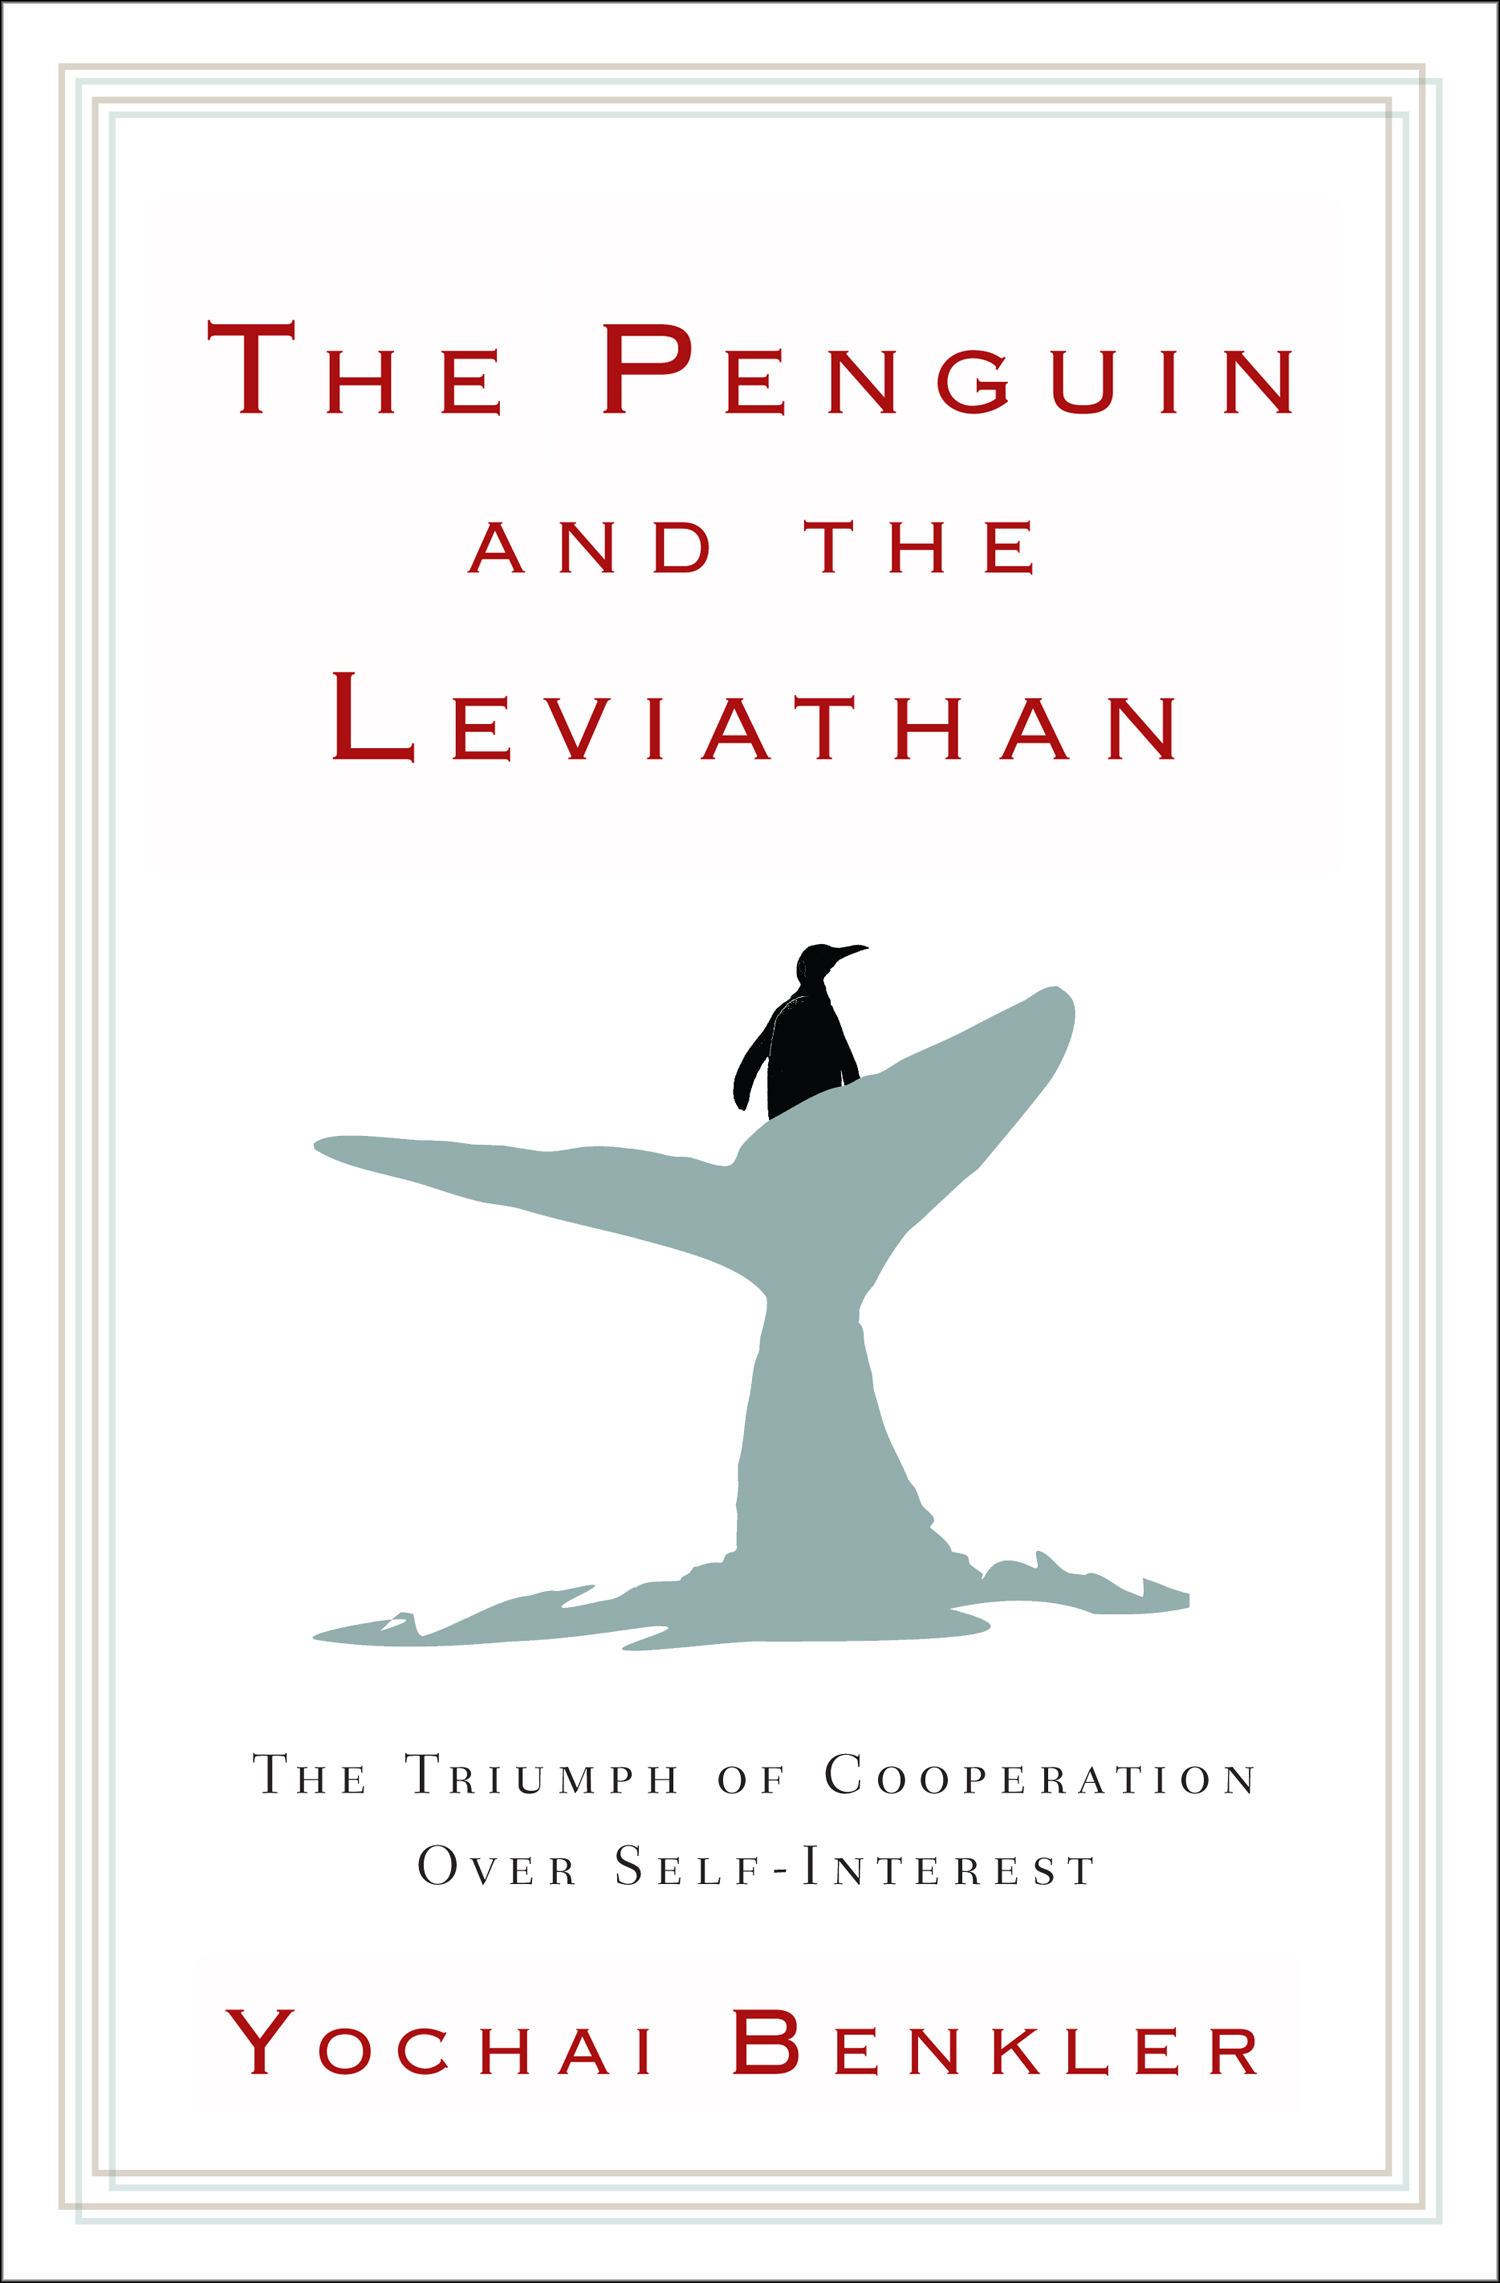 THE-PENGUIN-AND-THE-LEVIATHAN-comp-ss6.jpg